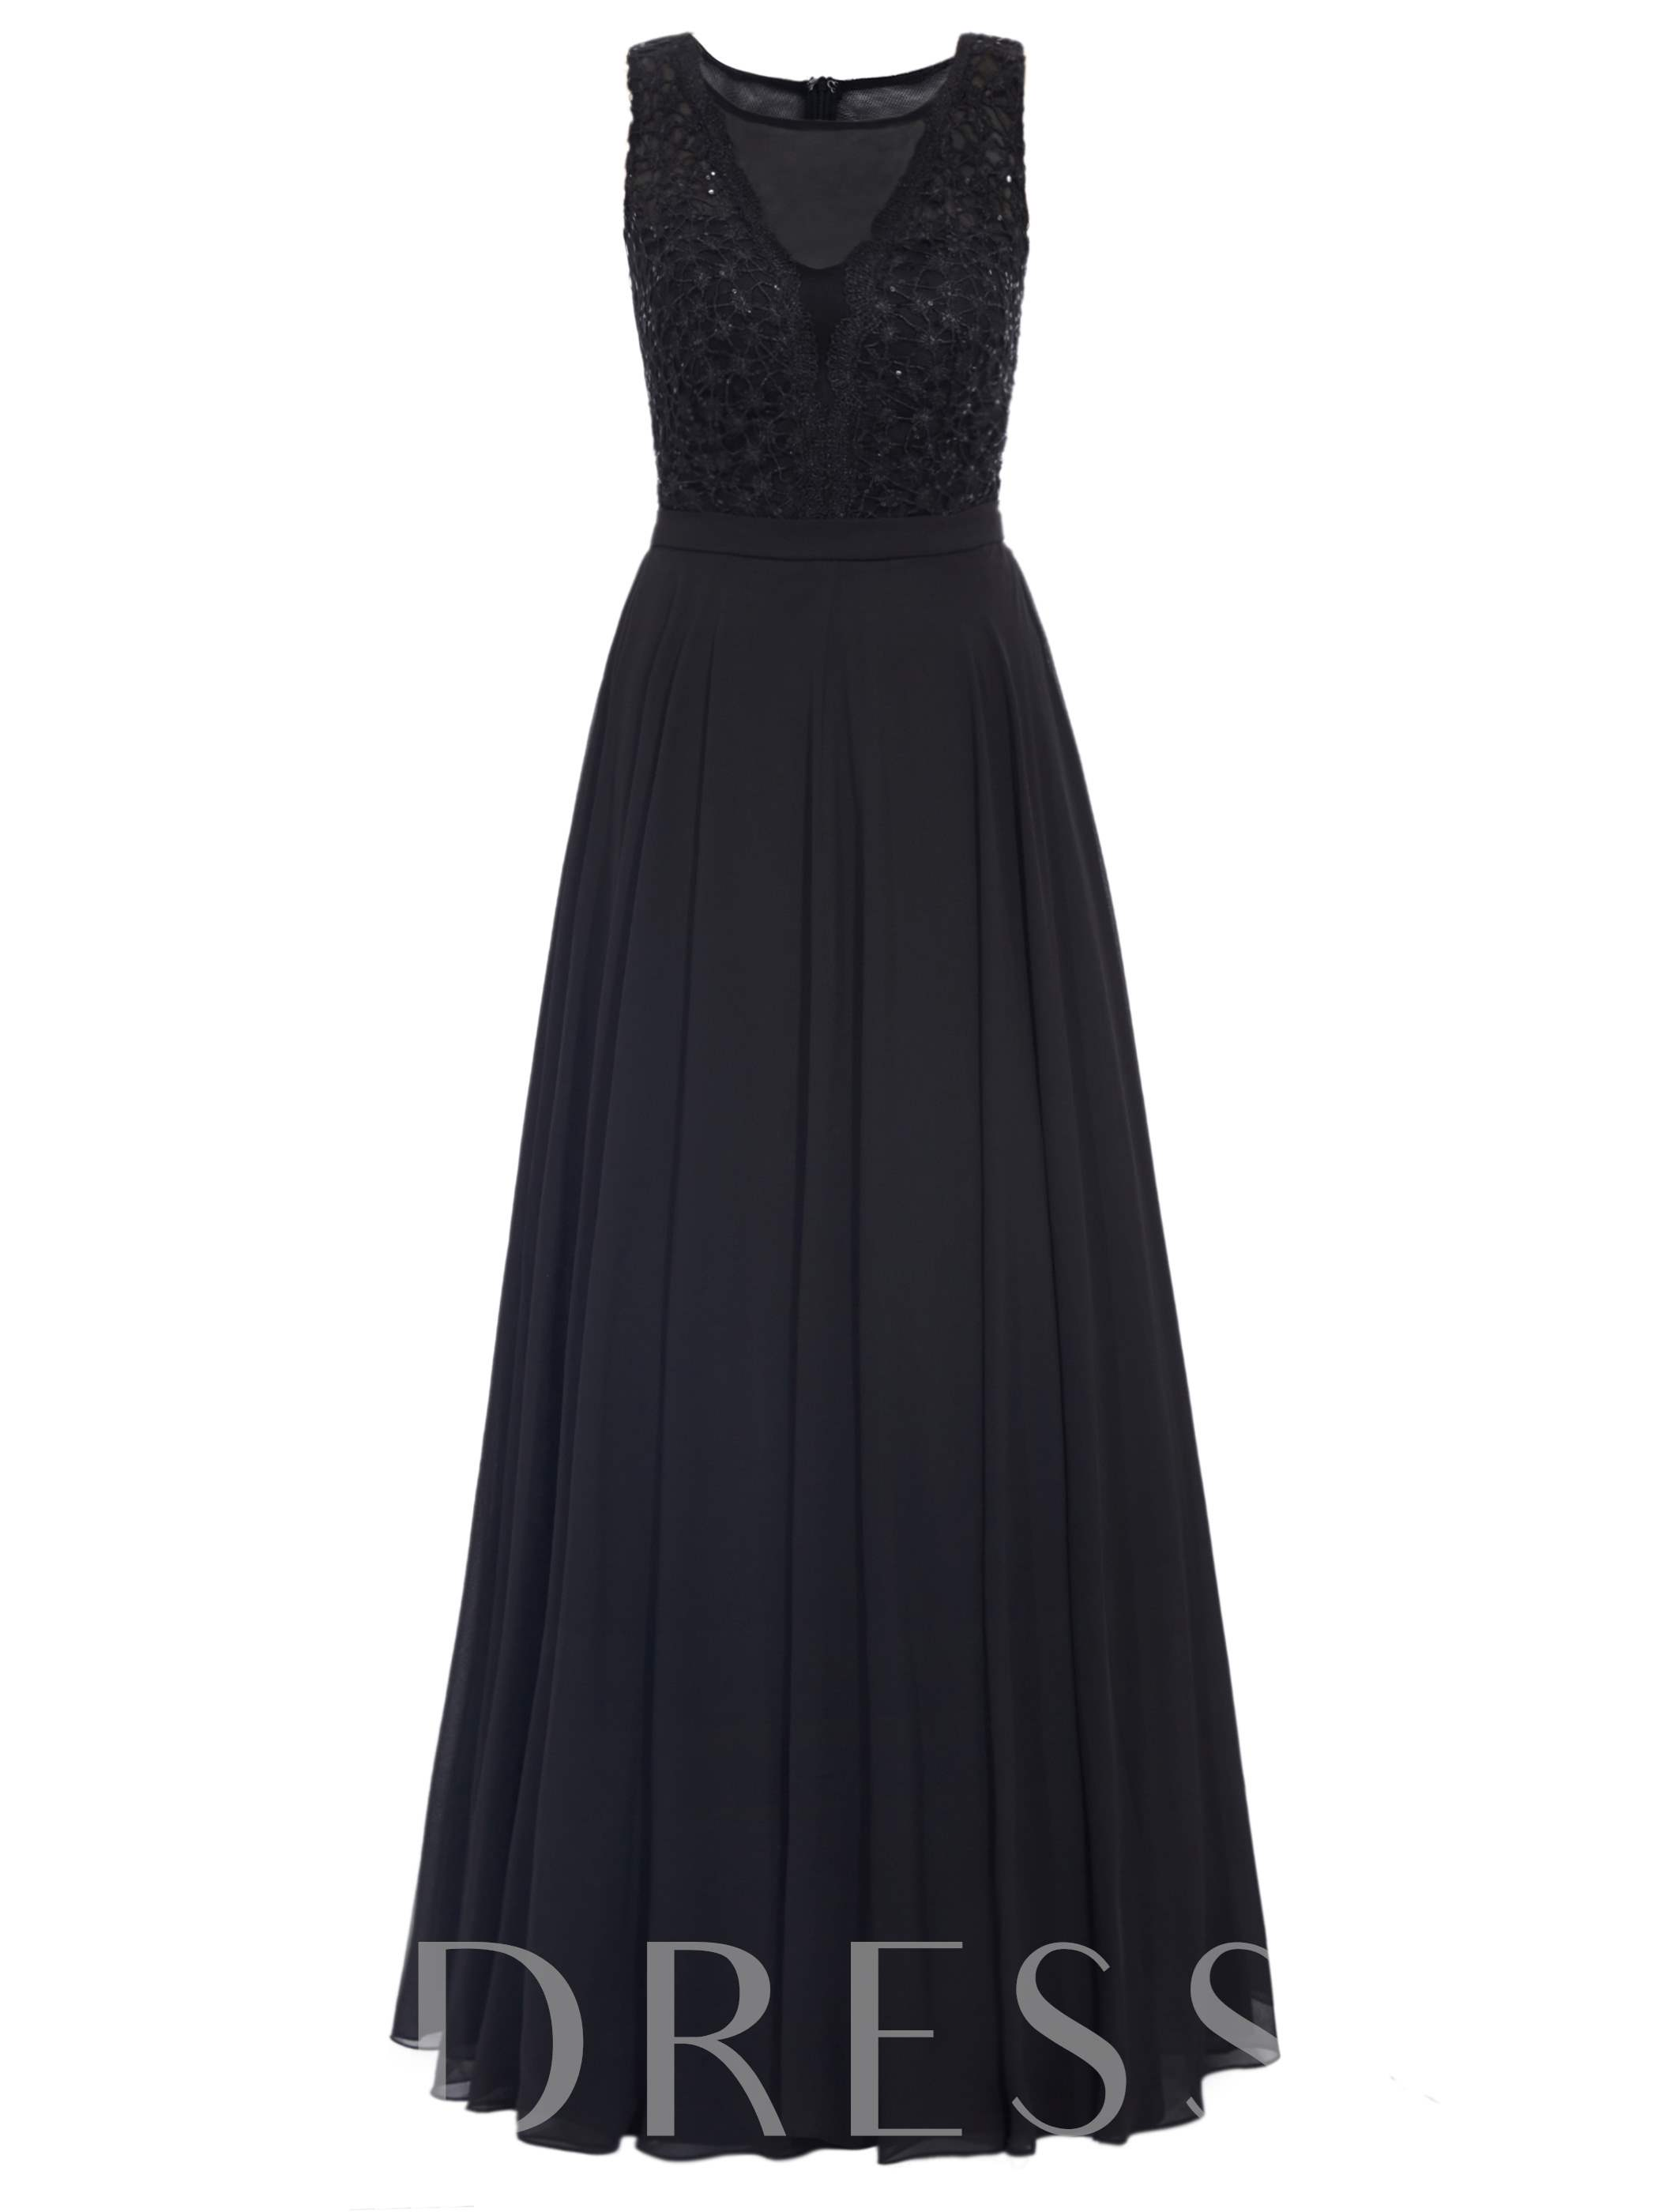 Buy Scoop A-Line Lace Ankle-Length Evening Dress, Tanpell, Spring,Summer,Fall,Winter, 12721756 for $30.86 in TBDress store